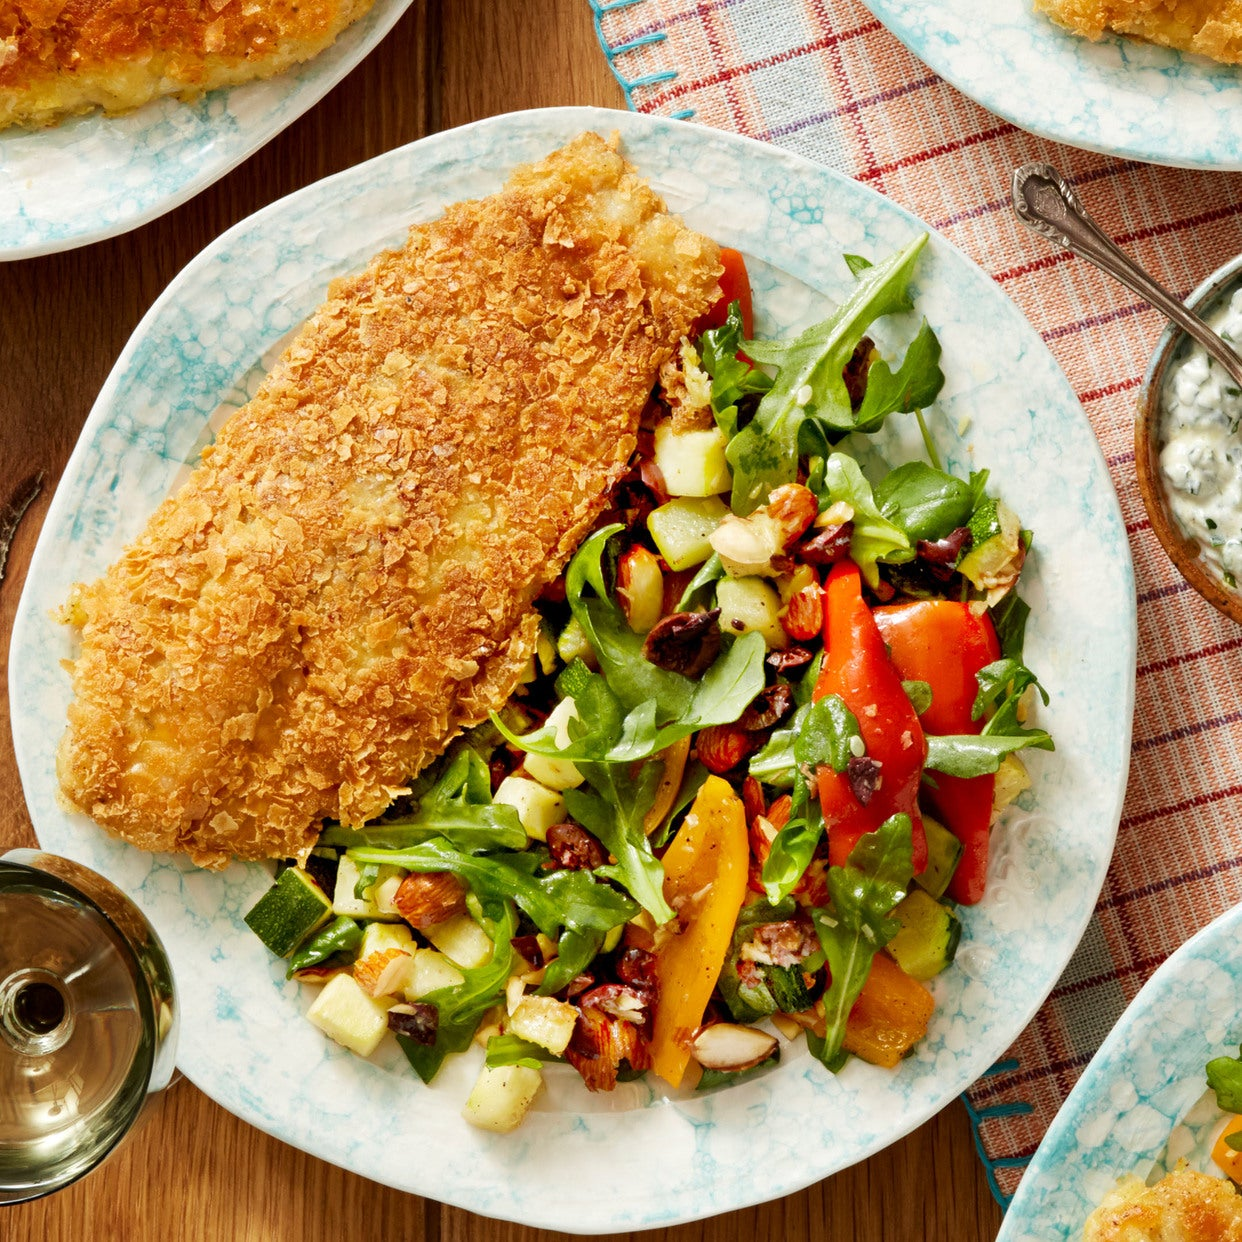 Potato-Crusted Catfish & Garlic Chive Sauce with Summer Squash & Arugula Salad